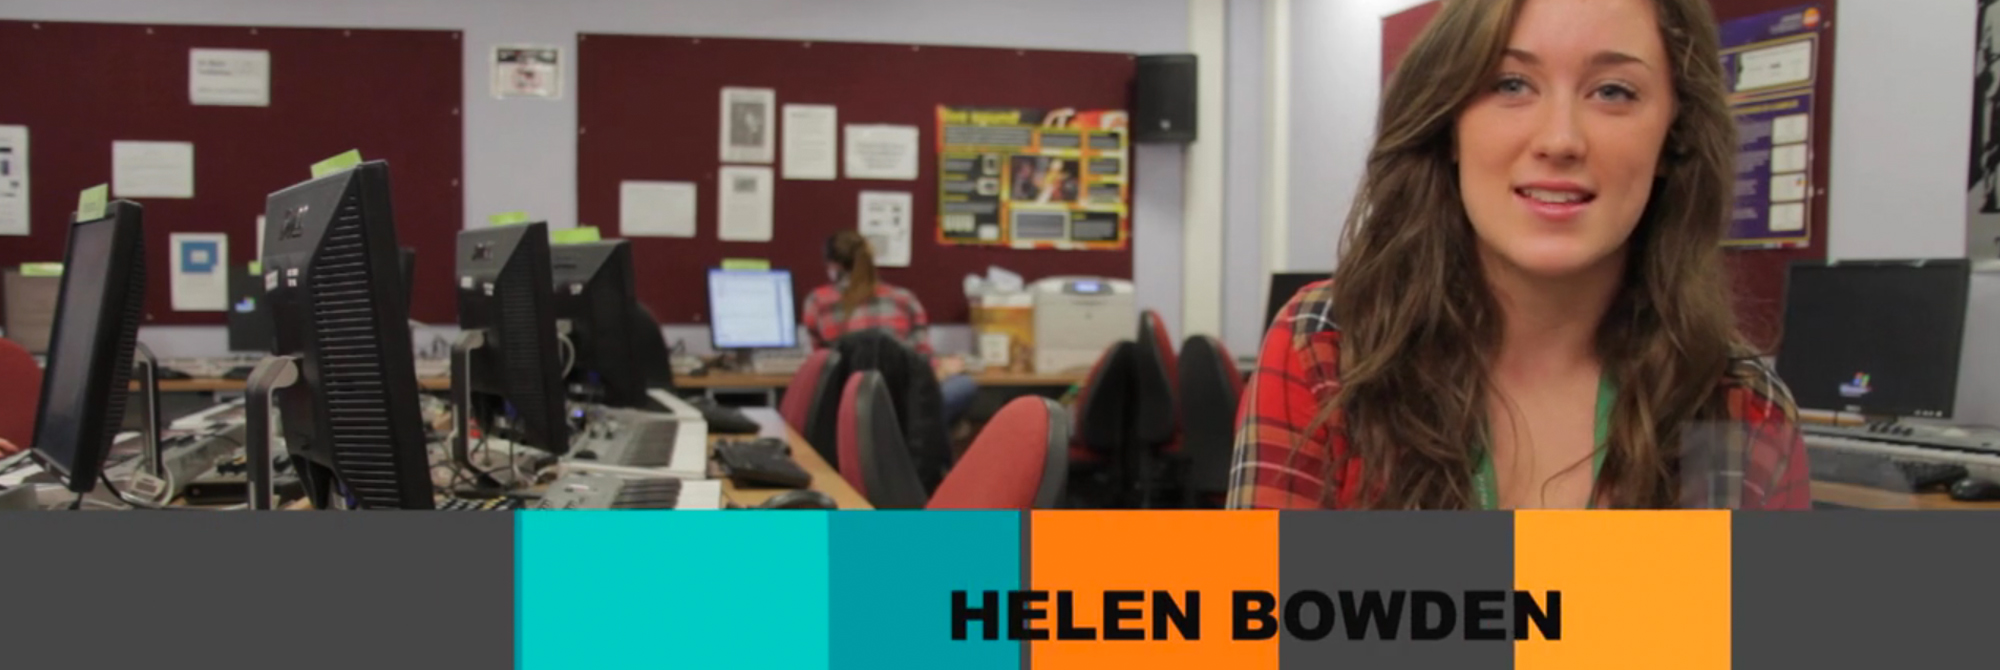 university Video Graphics production for holy cross sixth form